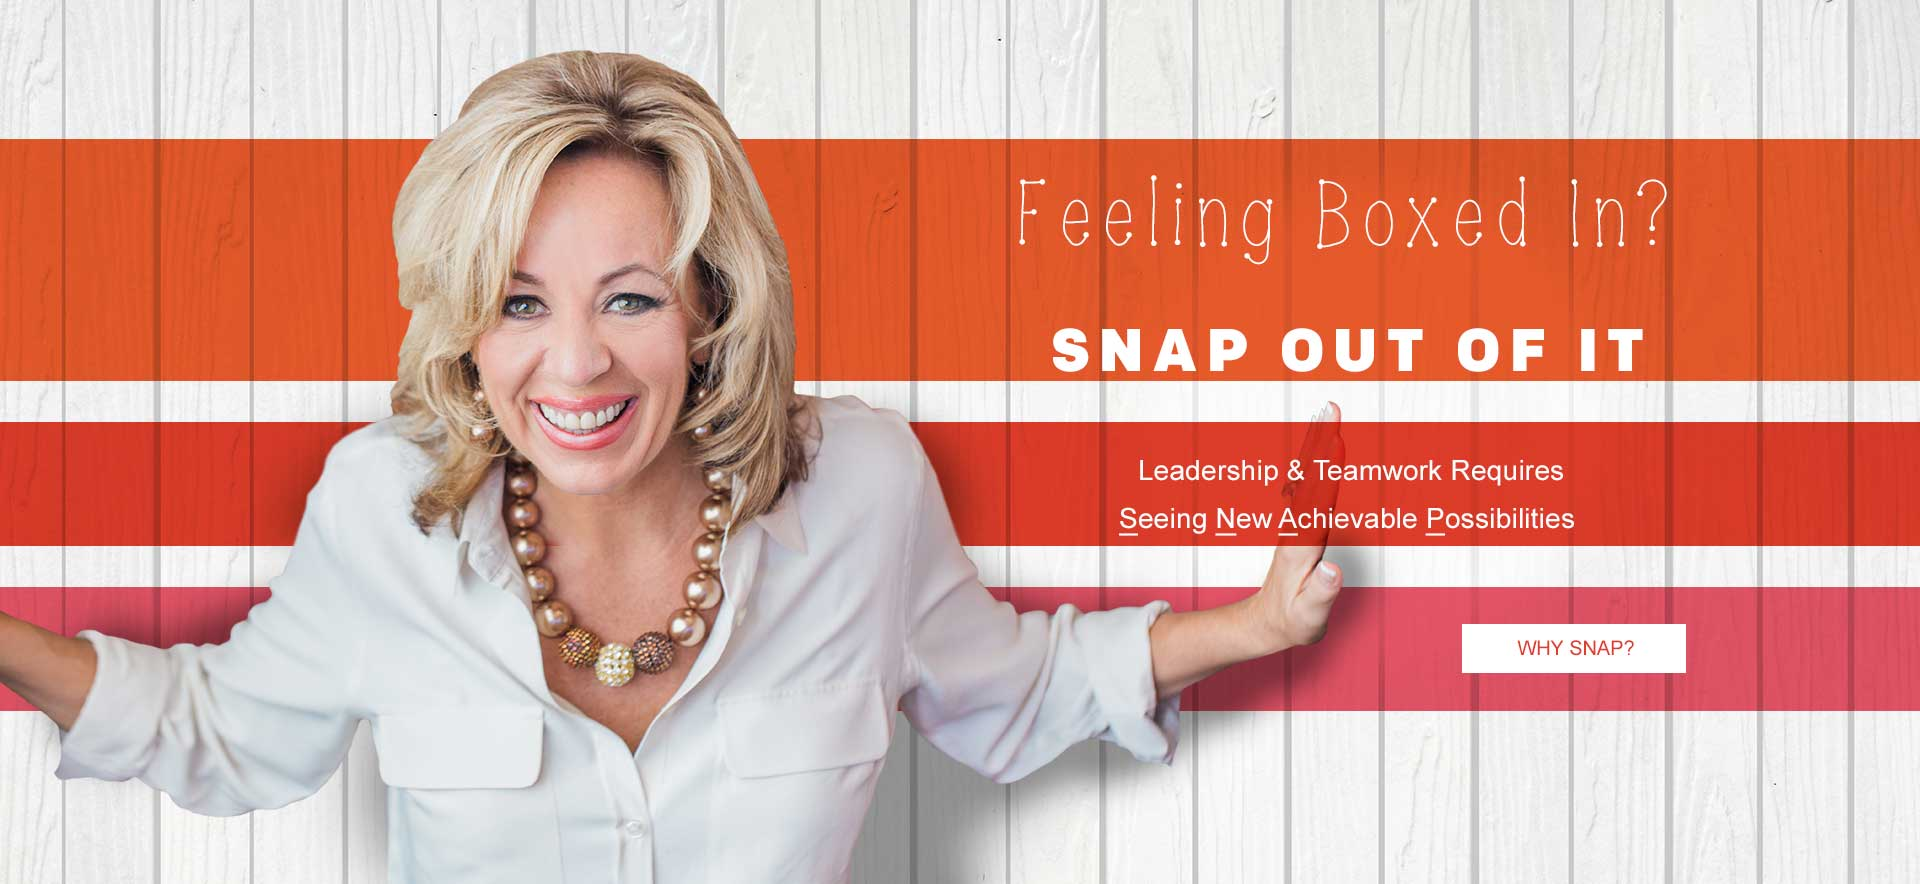 Snap out of it keynote speaker dede murcer moffett leadership and teamwork expert